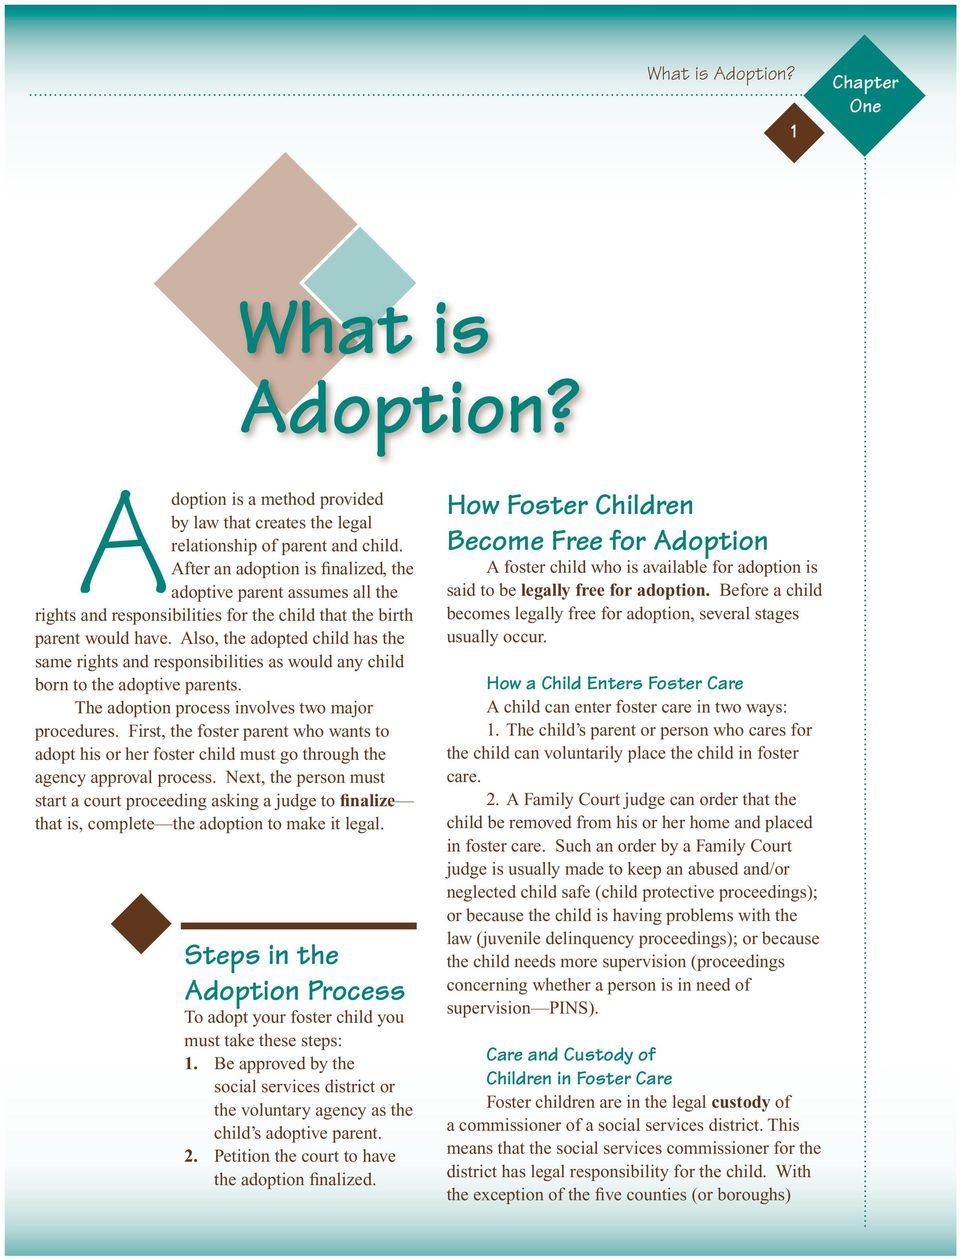 Also, the adopted child has the same rights and responsibilities as would any child born to the adoptive parents. The adoption process involves two major procedures.